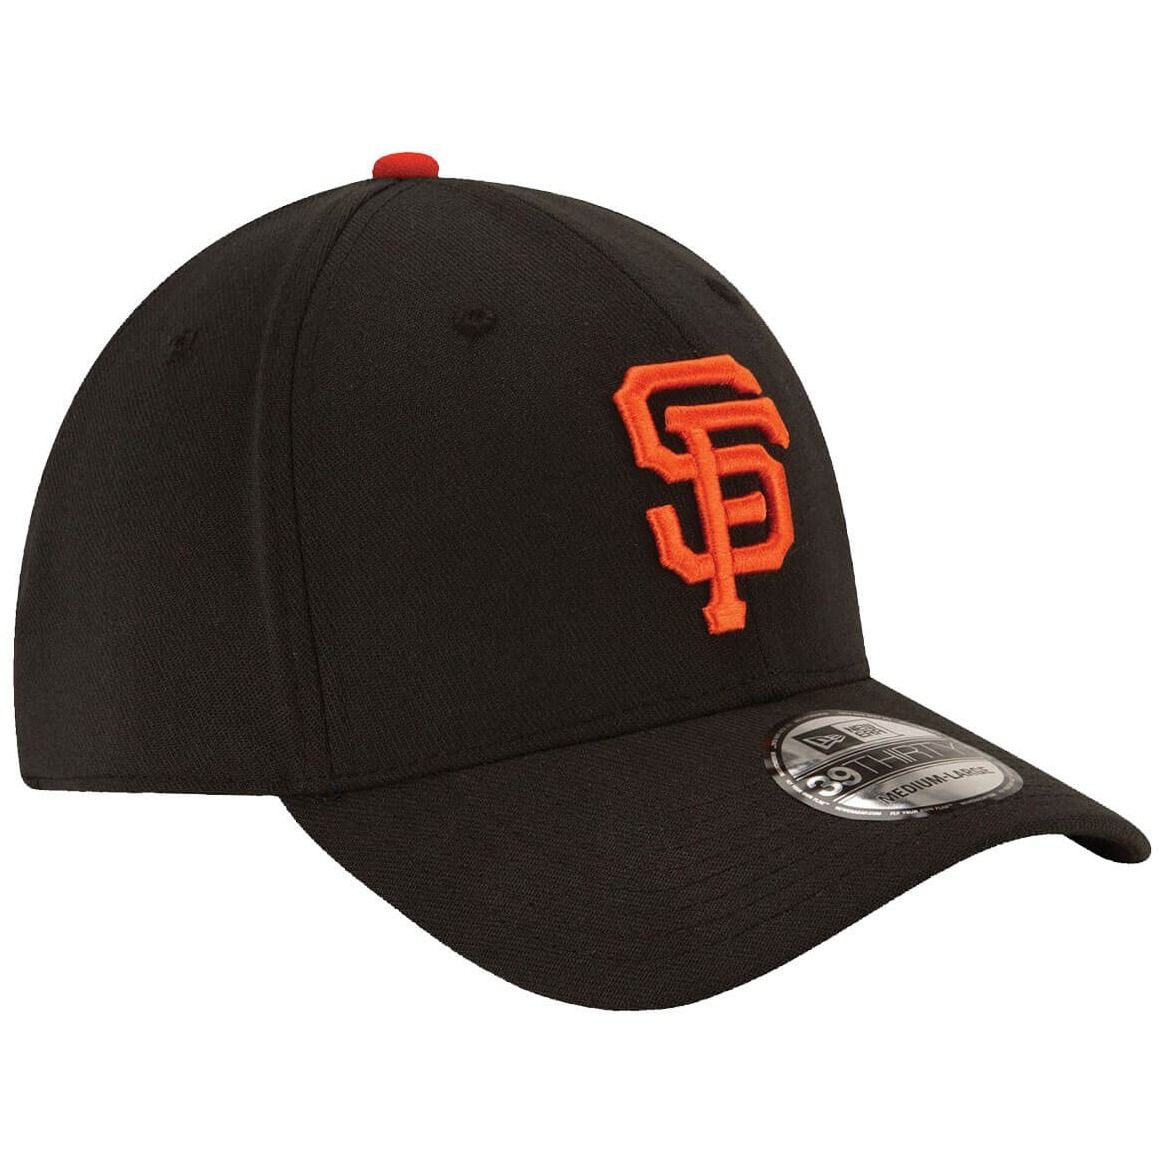 f5f383bb2 boné new era aba curva fechado mlb sf giants classic. Carregando zoom.